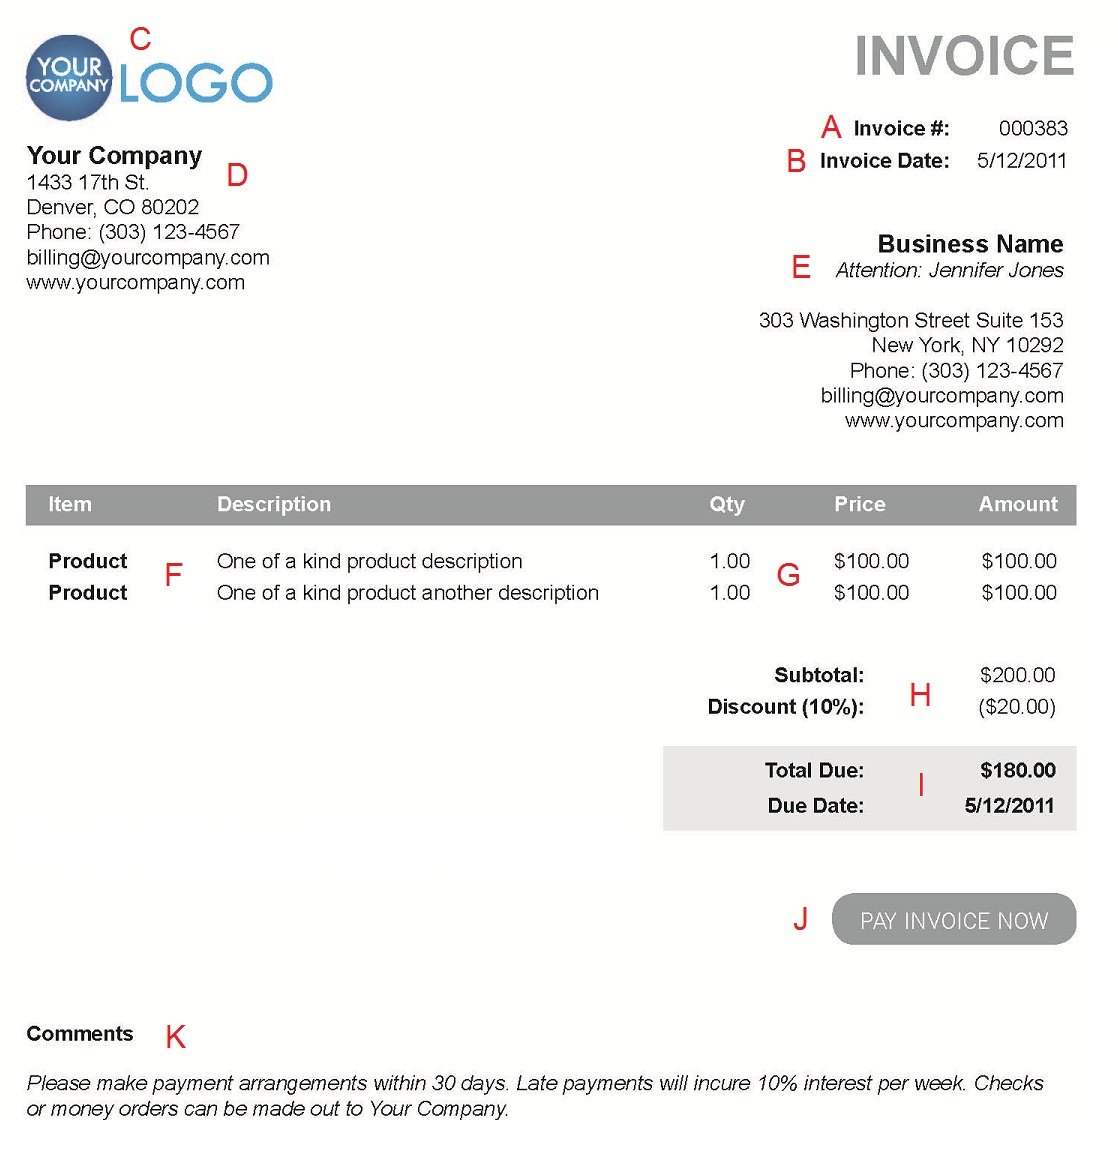 Opposenewapstandardsus  Winning The  Different Sections Of An Electronic Payment Invoice With Exquisite A  With Beautiful Invoice Account Also Invoicing Made Simple In Addition Invoice Issuance And Php Invoicing System As Well As Invoice Template Doc Free Additionally Automatic Invoice From Paysimplecom With Opposenewapstandardsus  Exquisite The  Different Sections Of An Electronic Payment Invoice With Beautiful A  And Winning Invoice Account Also Invoicing Made Simple In Addition Invoice Issuance From Paysimplecom